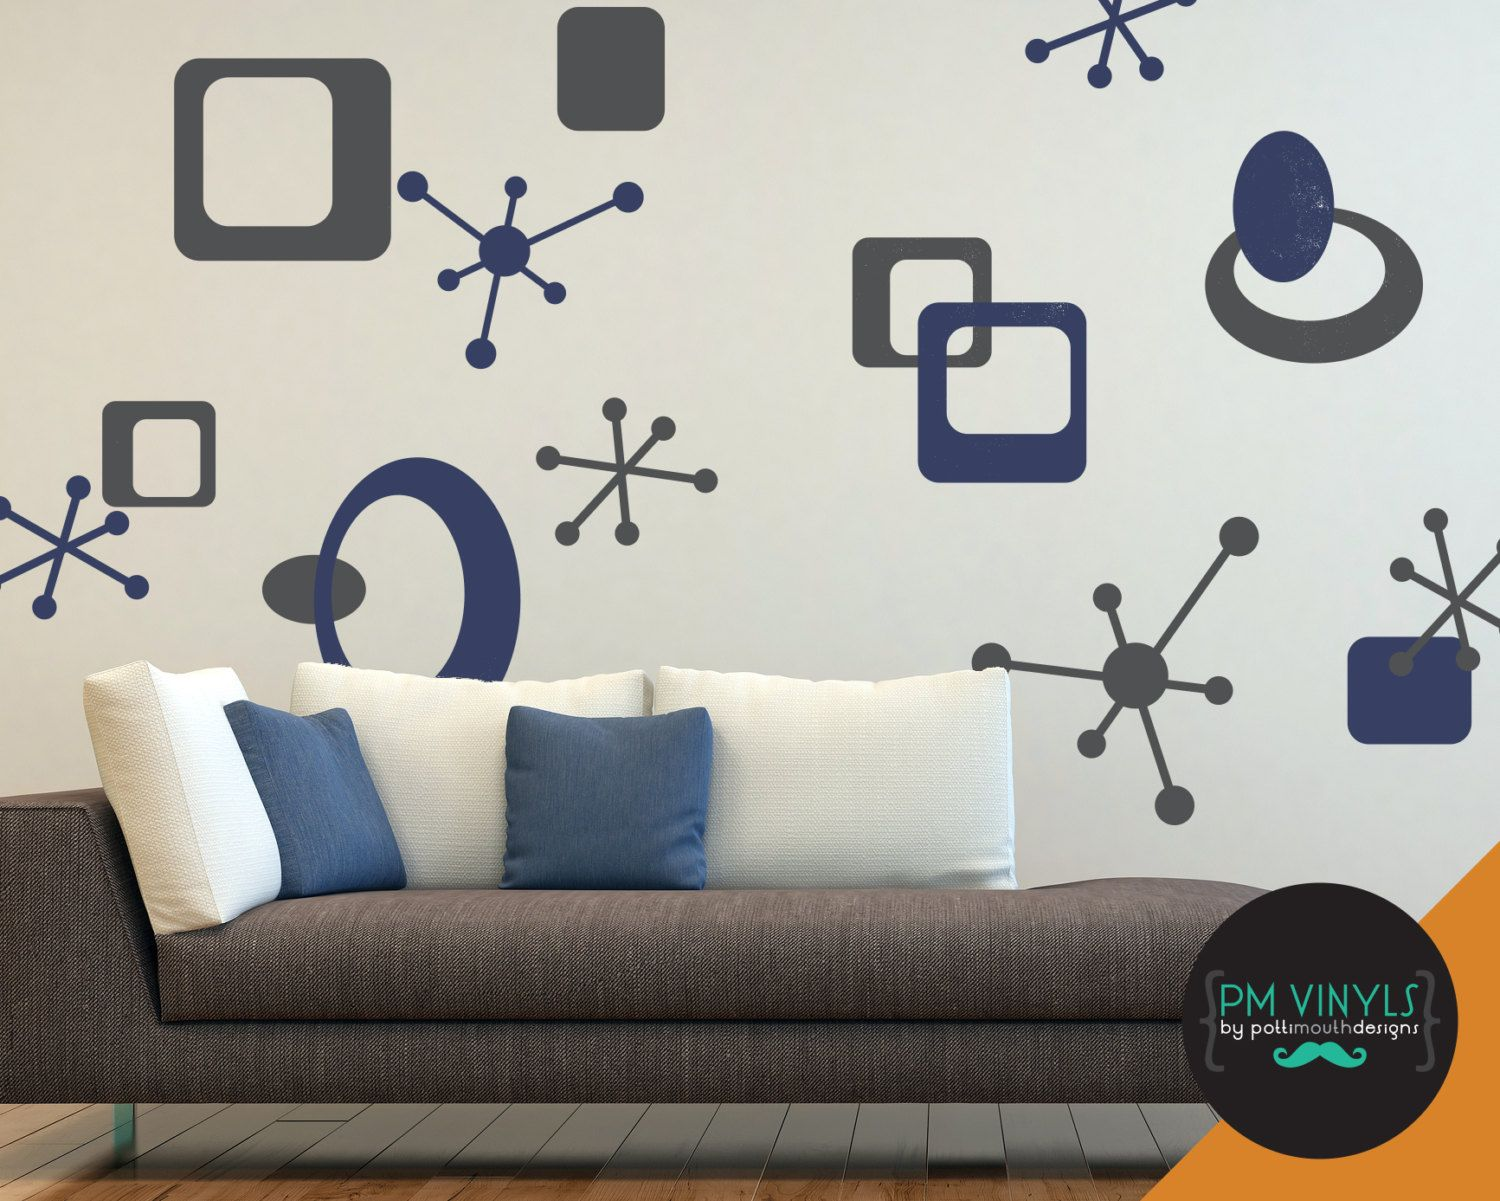 Large Retro Starbursts, Ovals and Squares Vinyl Wall Decals - SHA024-LG by PMVinyls on Etsy